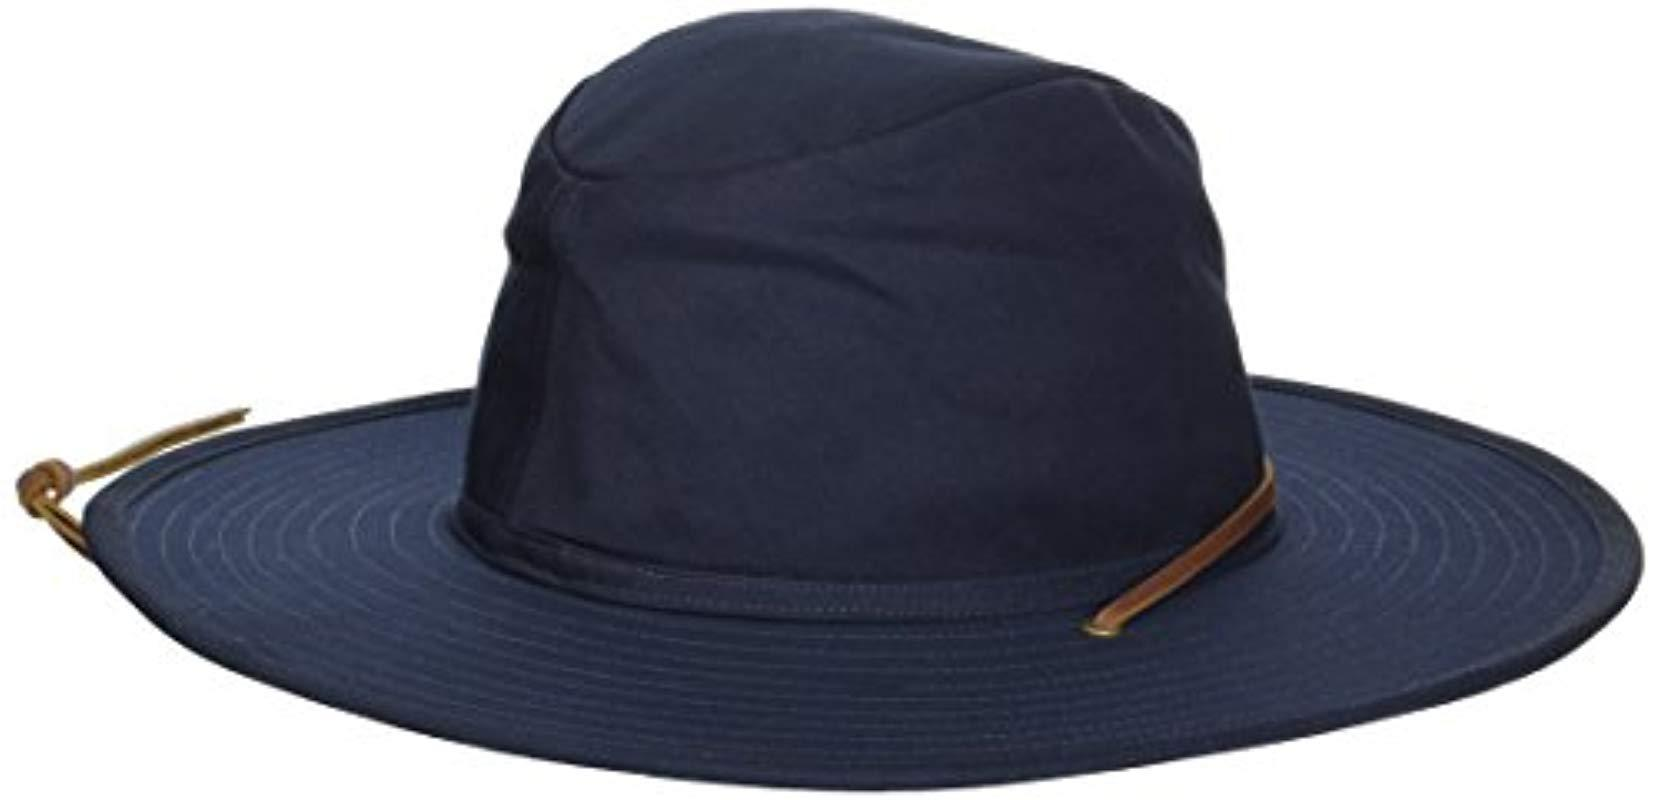 cf03a9b7dd5f2 Brixton - Blue Ranger Ii Wide Brim Cotton Fedora Hat for Men - Lyst. View  fullscreen